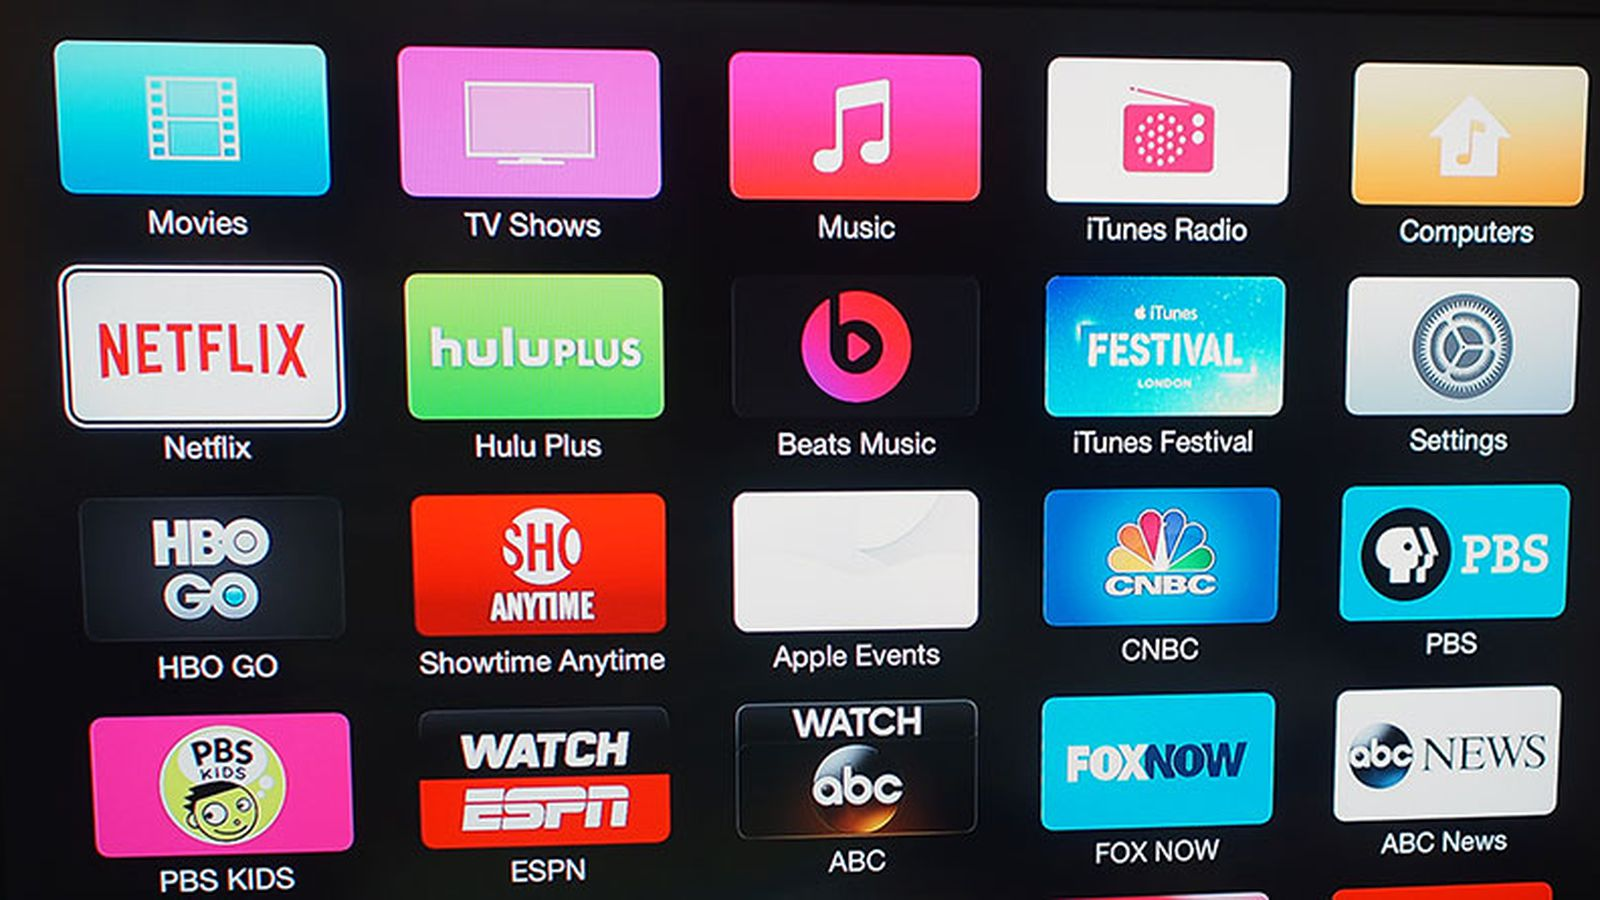 Apple TV (3rd generation) | Apple - The Verge